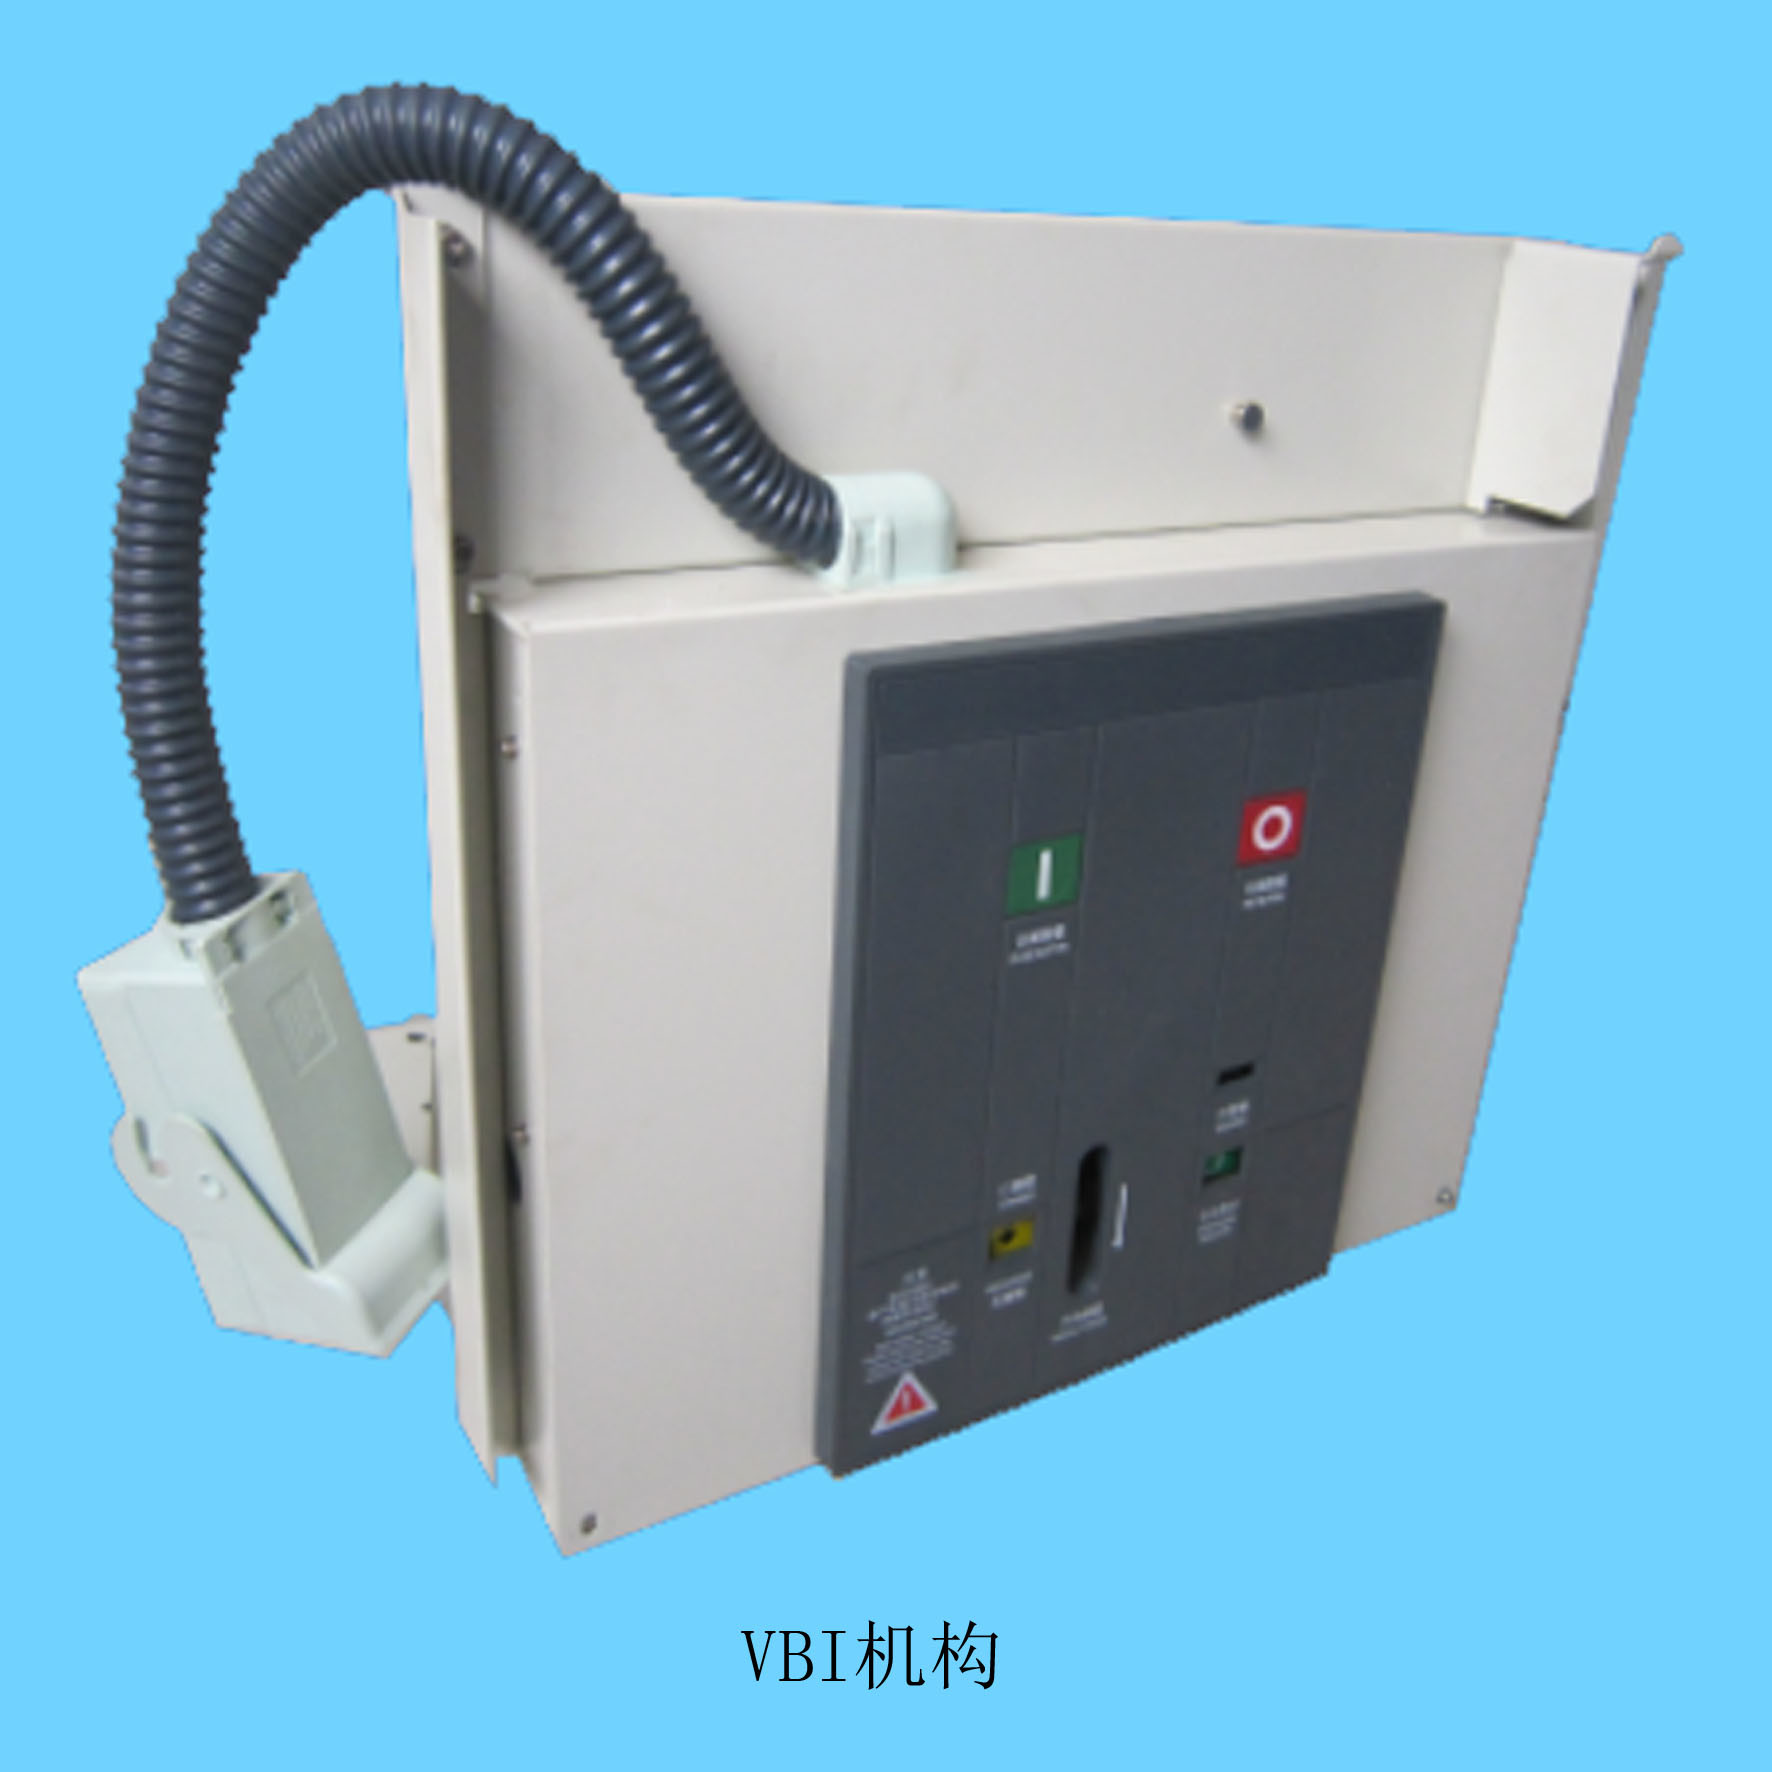 Outdoor Circuit Breaker Mechanism for Vbi-12